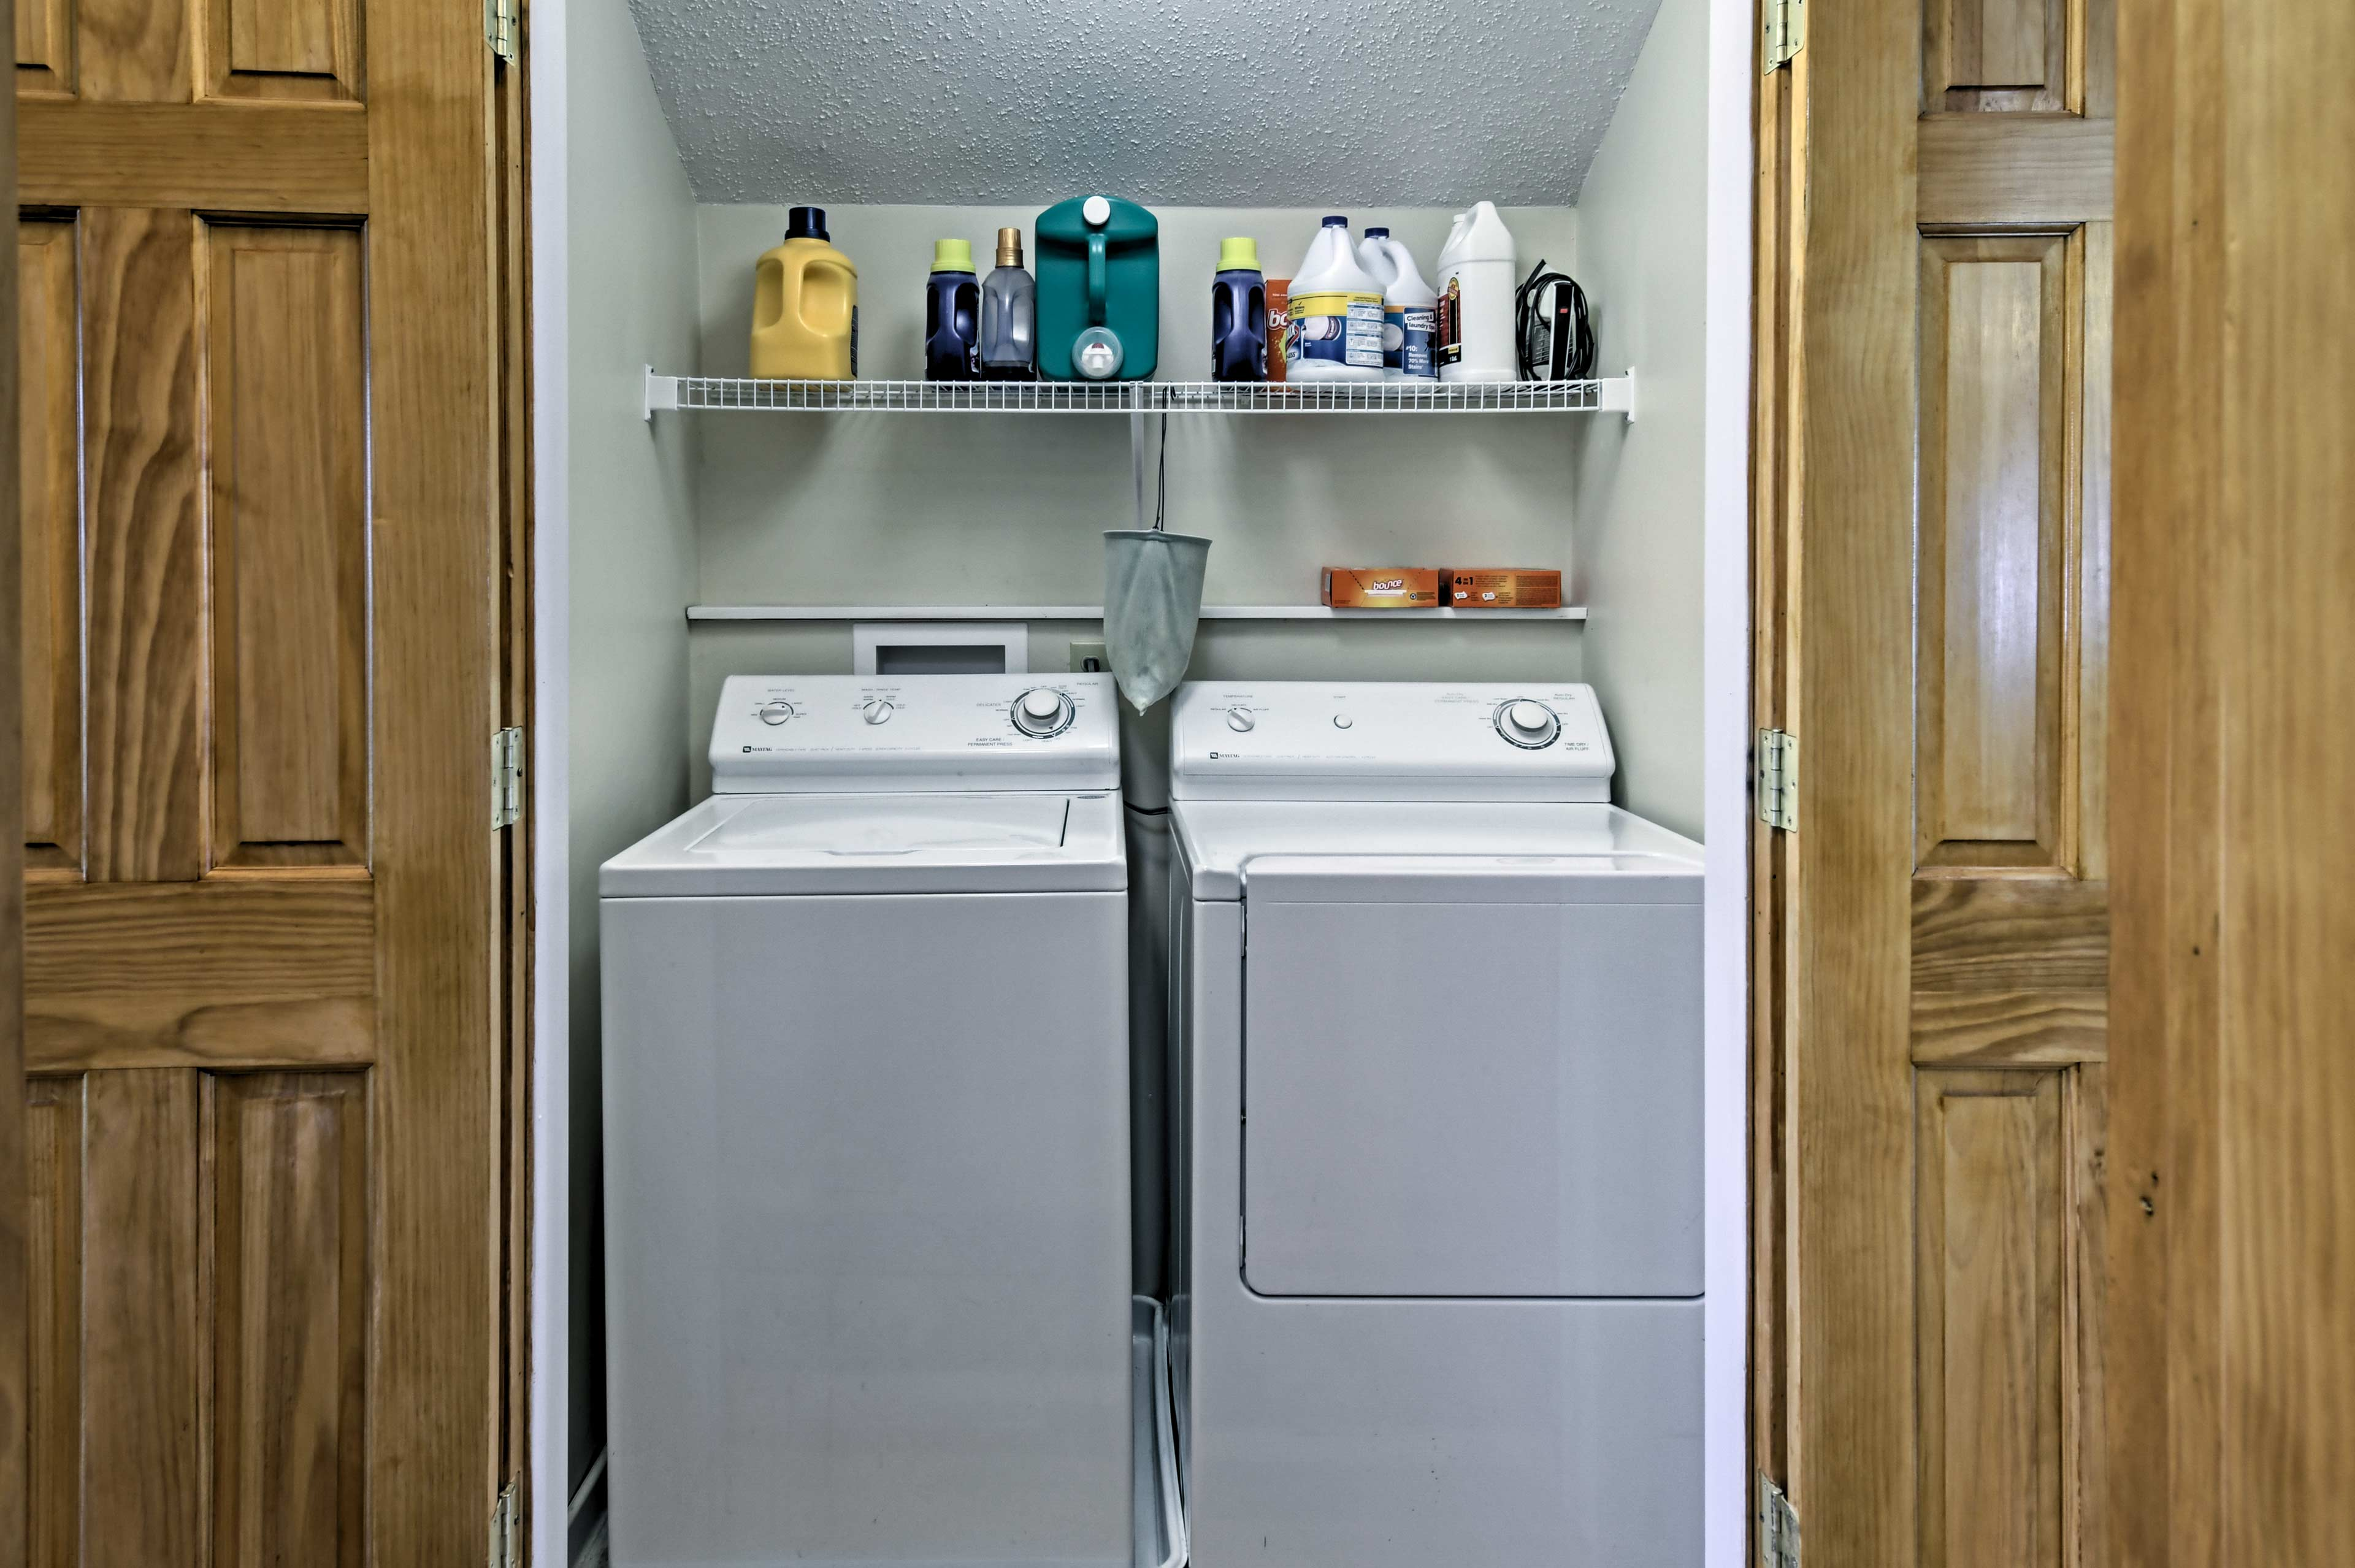 Keep your belongings nice and clean by utilizing the laundry machines.